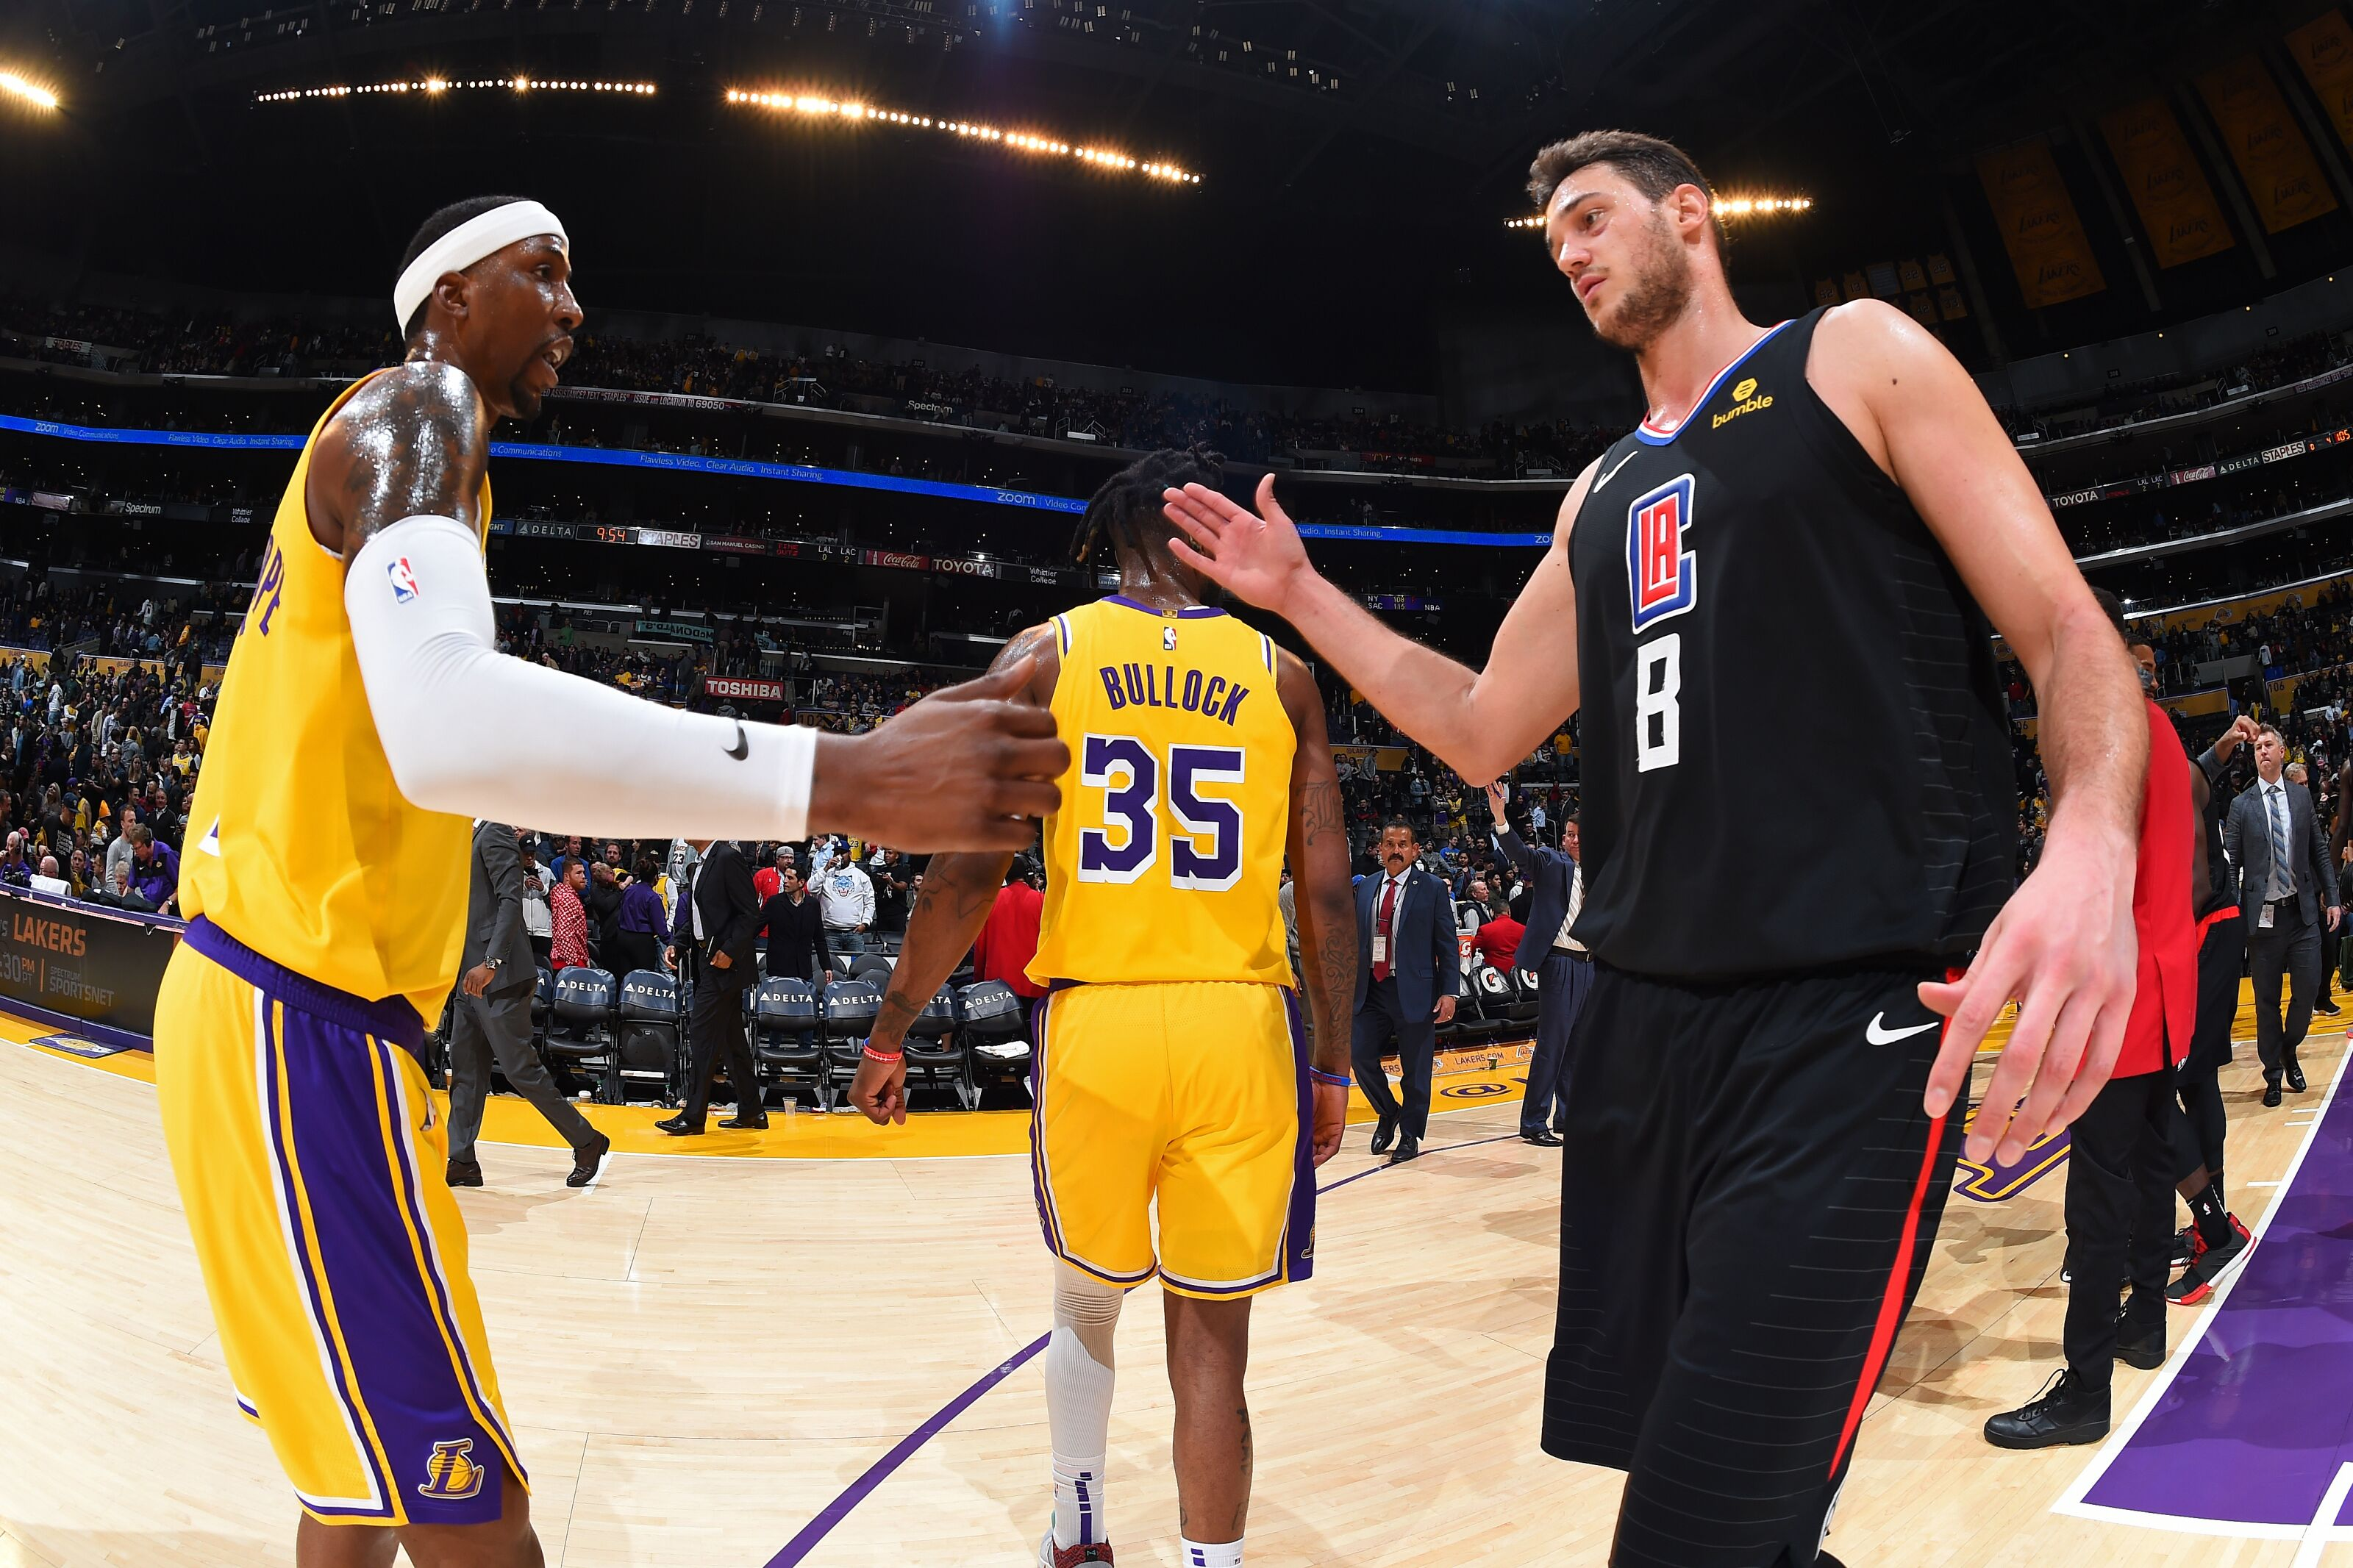 Lakers Rumors: Agents believe Clippers are better landing spot